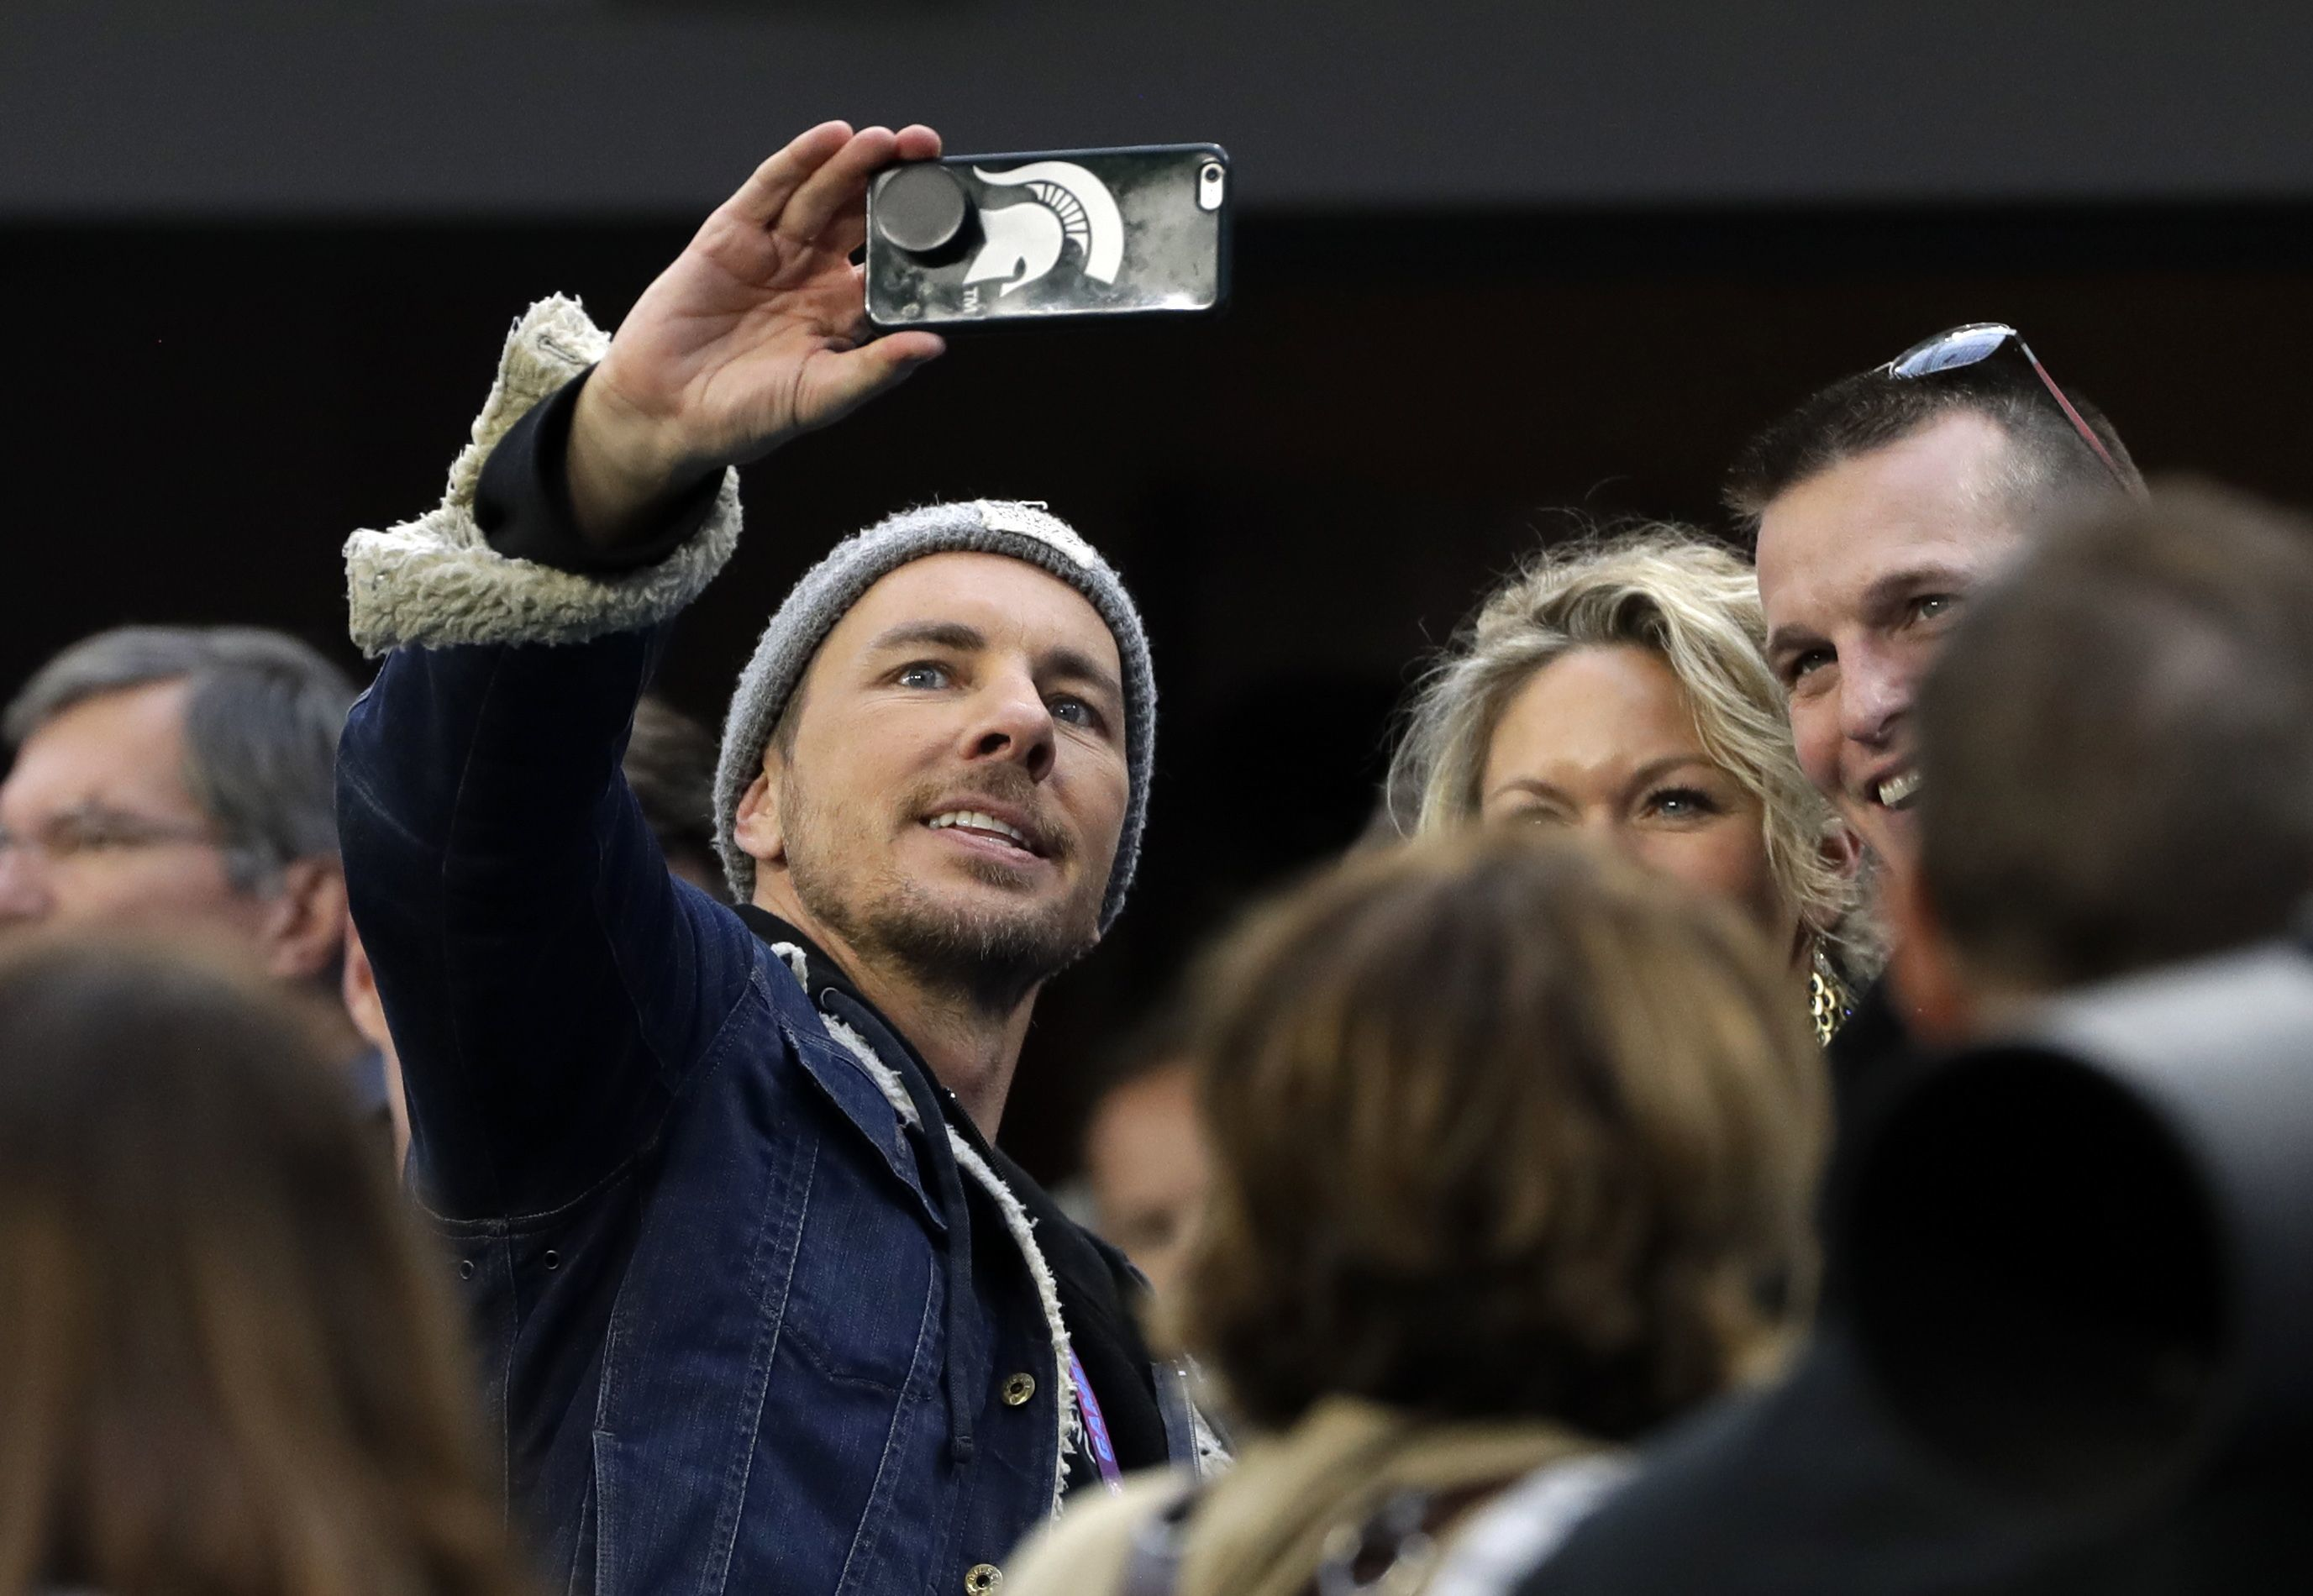 Dax Shepard takes selfie on the sideline, before the NFL Super Bowl 52 football game between the Philadelphia Eagles and the New England Patriots, in Minneapolis, Minnesota, on Feb. 4, 2018.